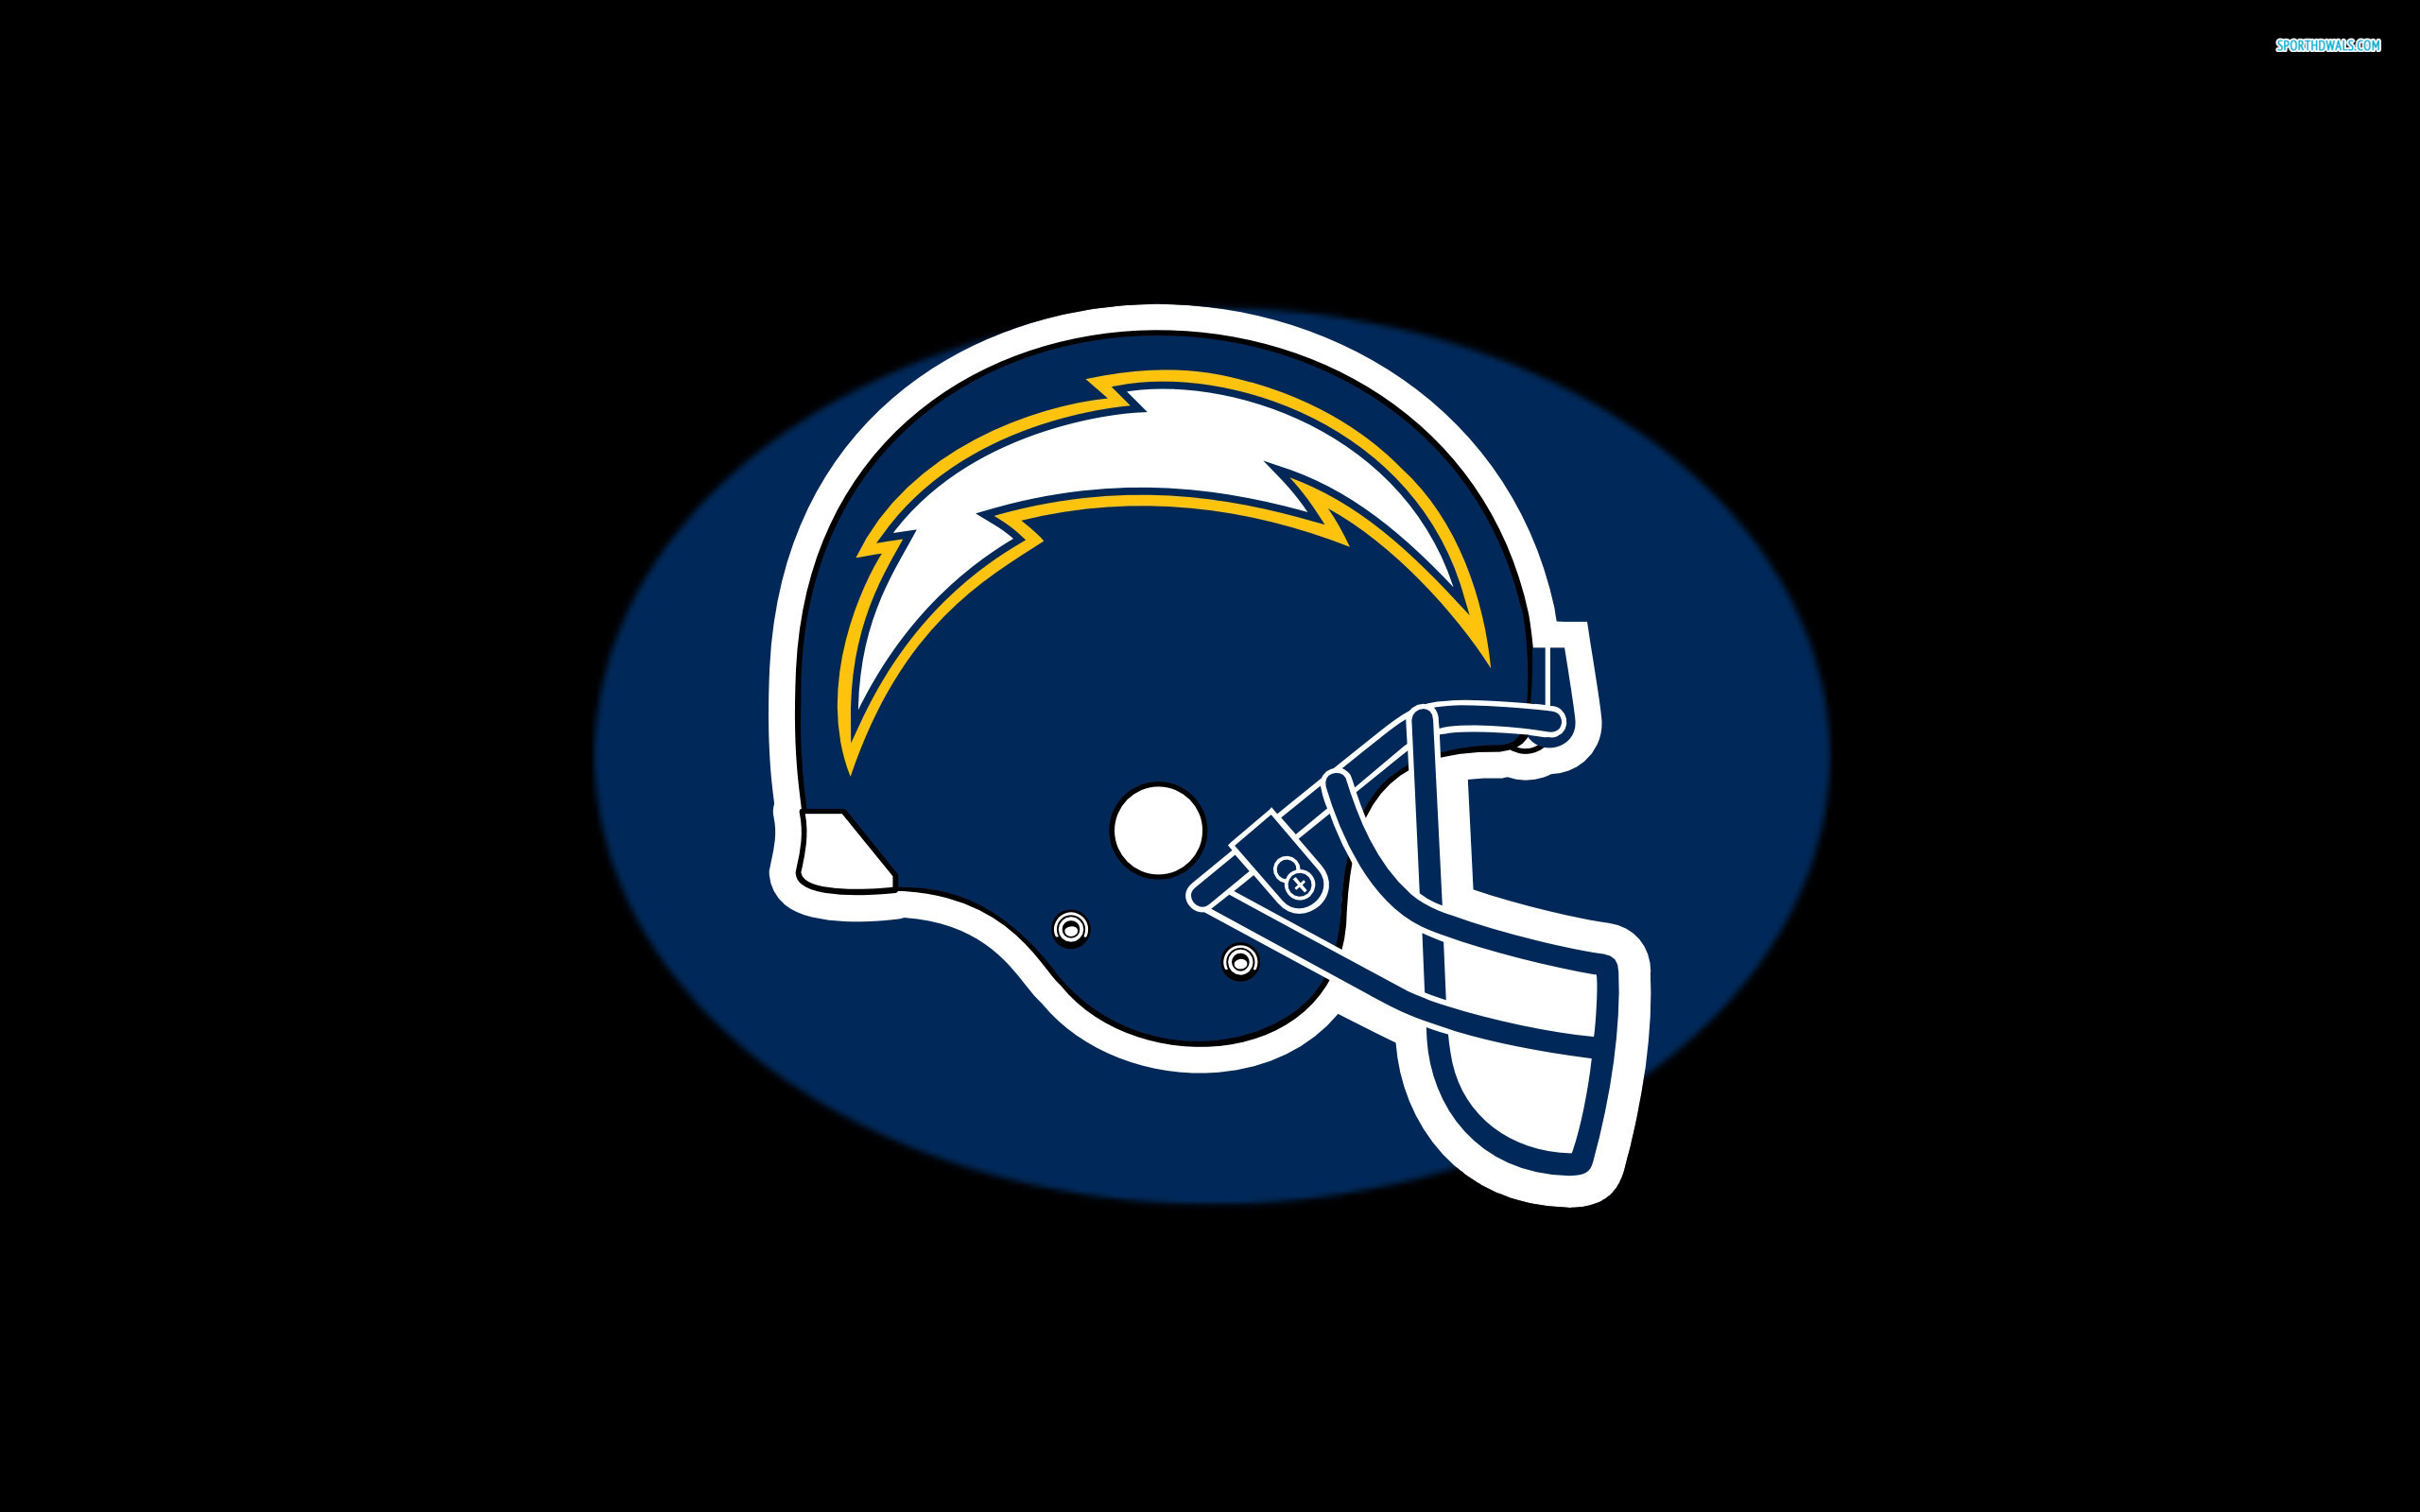 Free Download Pictures Nfl San Diego Chargers Iphone 5 5c 5s Wallpaper Hd Wallpapers 2560x1600 For Your Desktop Mobile Tablet Explore 48 San Diego Chargers Wallpaper Hd Chargers Wallpaper